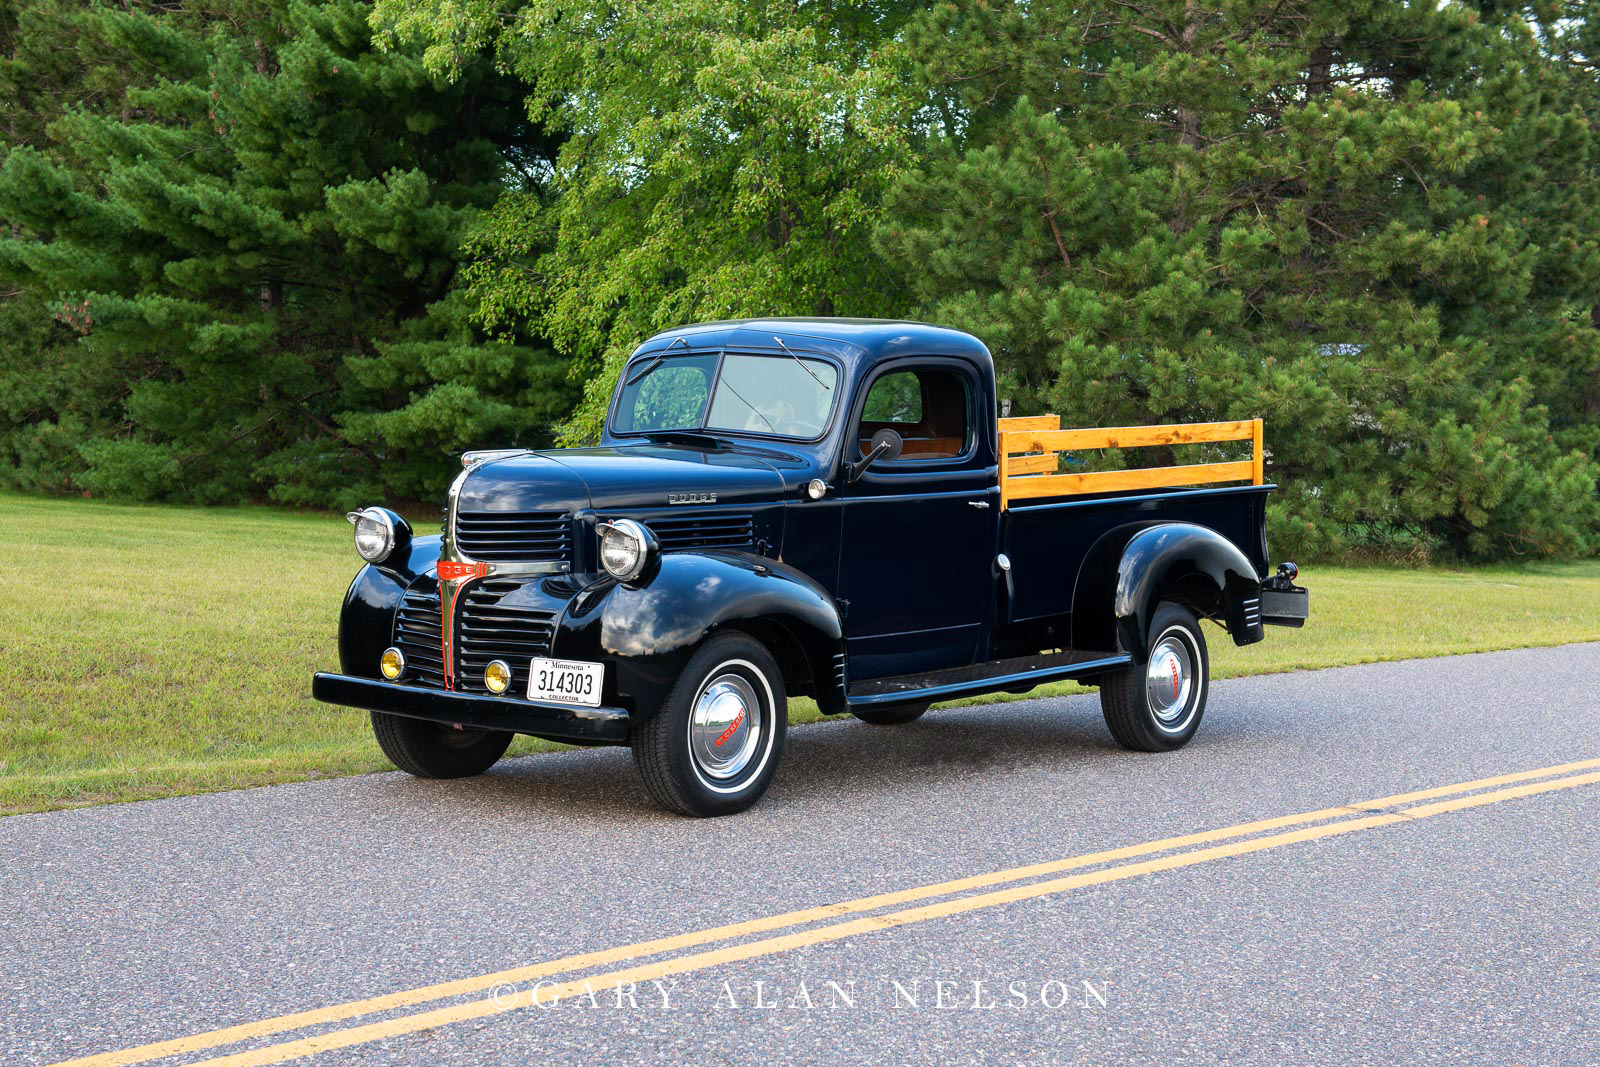 Ford, antique truck, pickup, vintage truck,1947 Dodge Series WC 1/2 ton Pickup, photo